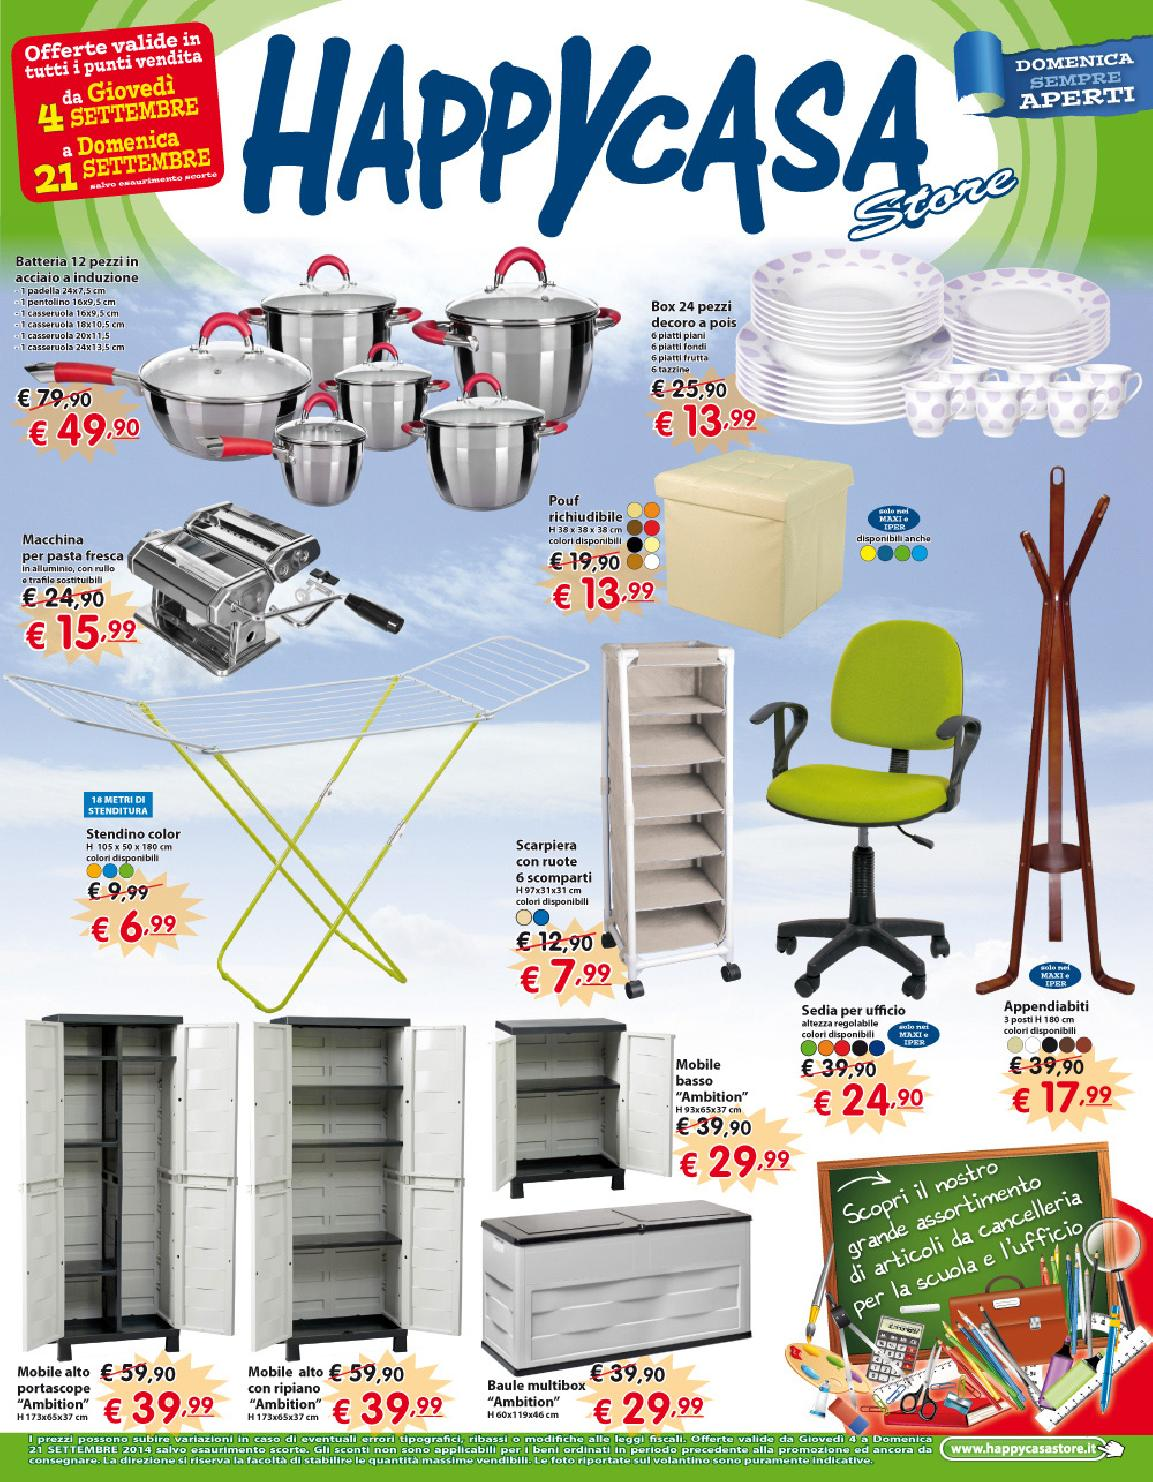 Padelle Happy Casa Volantino Happycasa Settembre 2014 By Goodstaff Adv Issuu